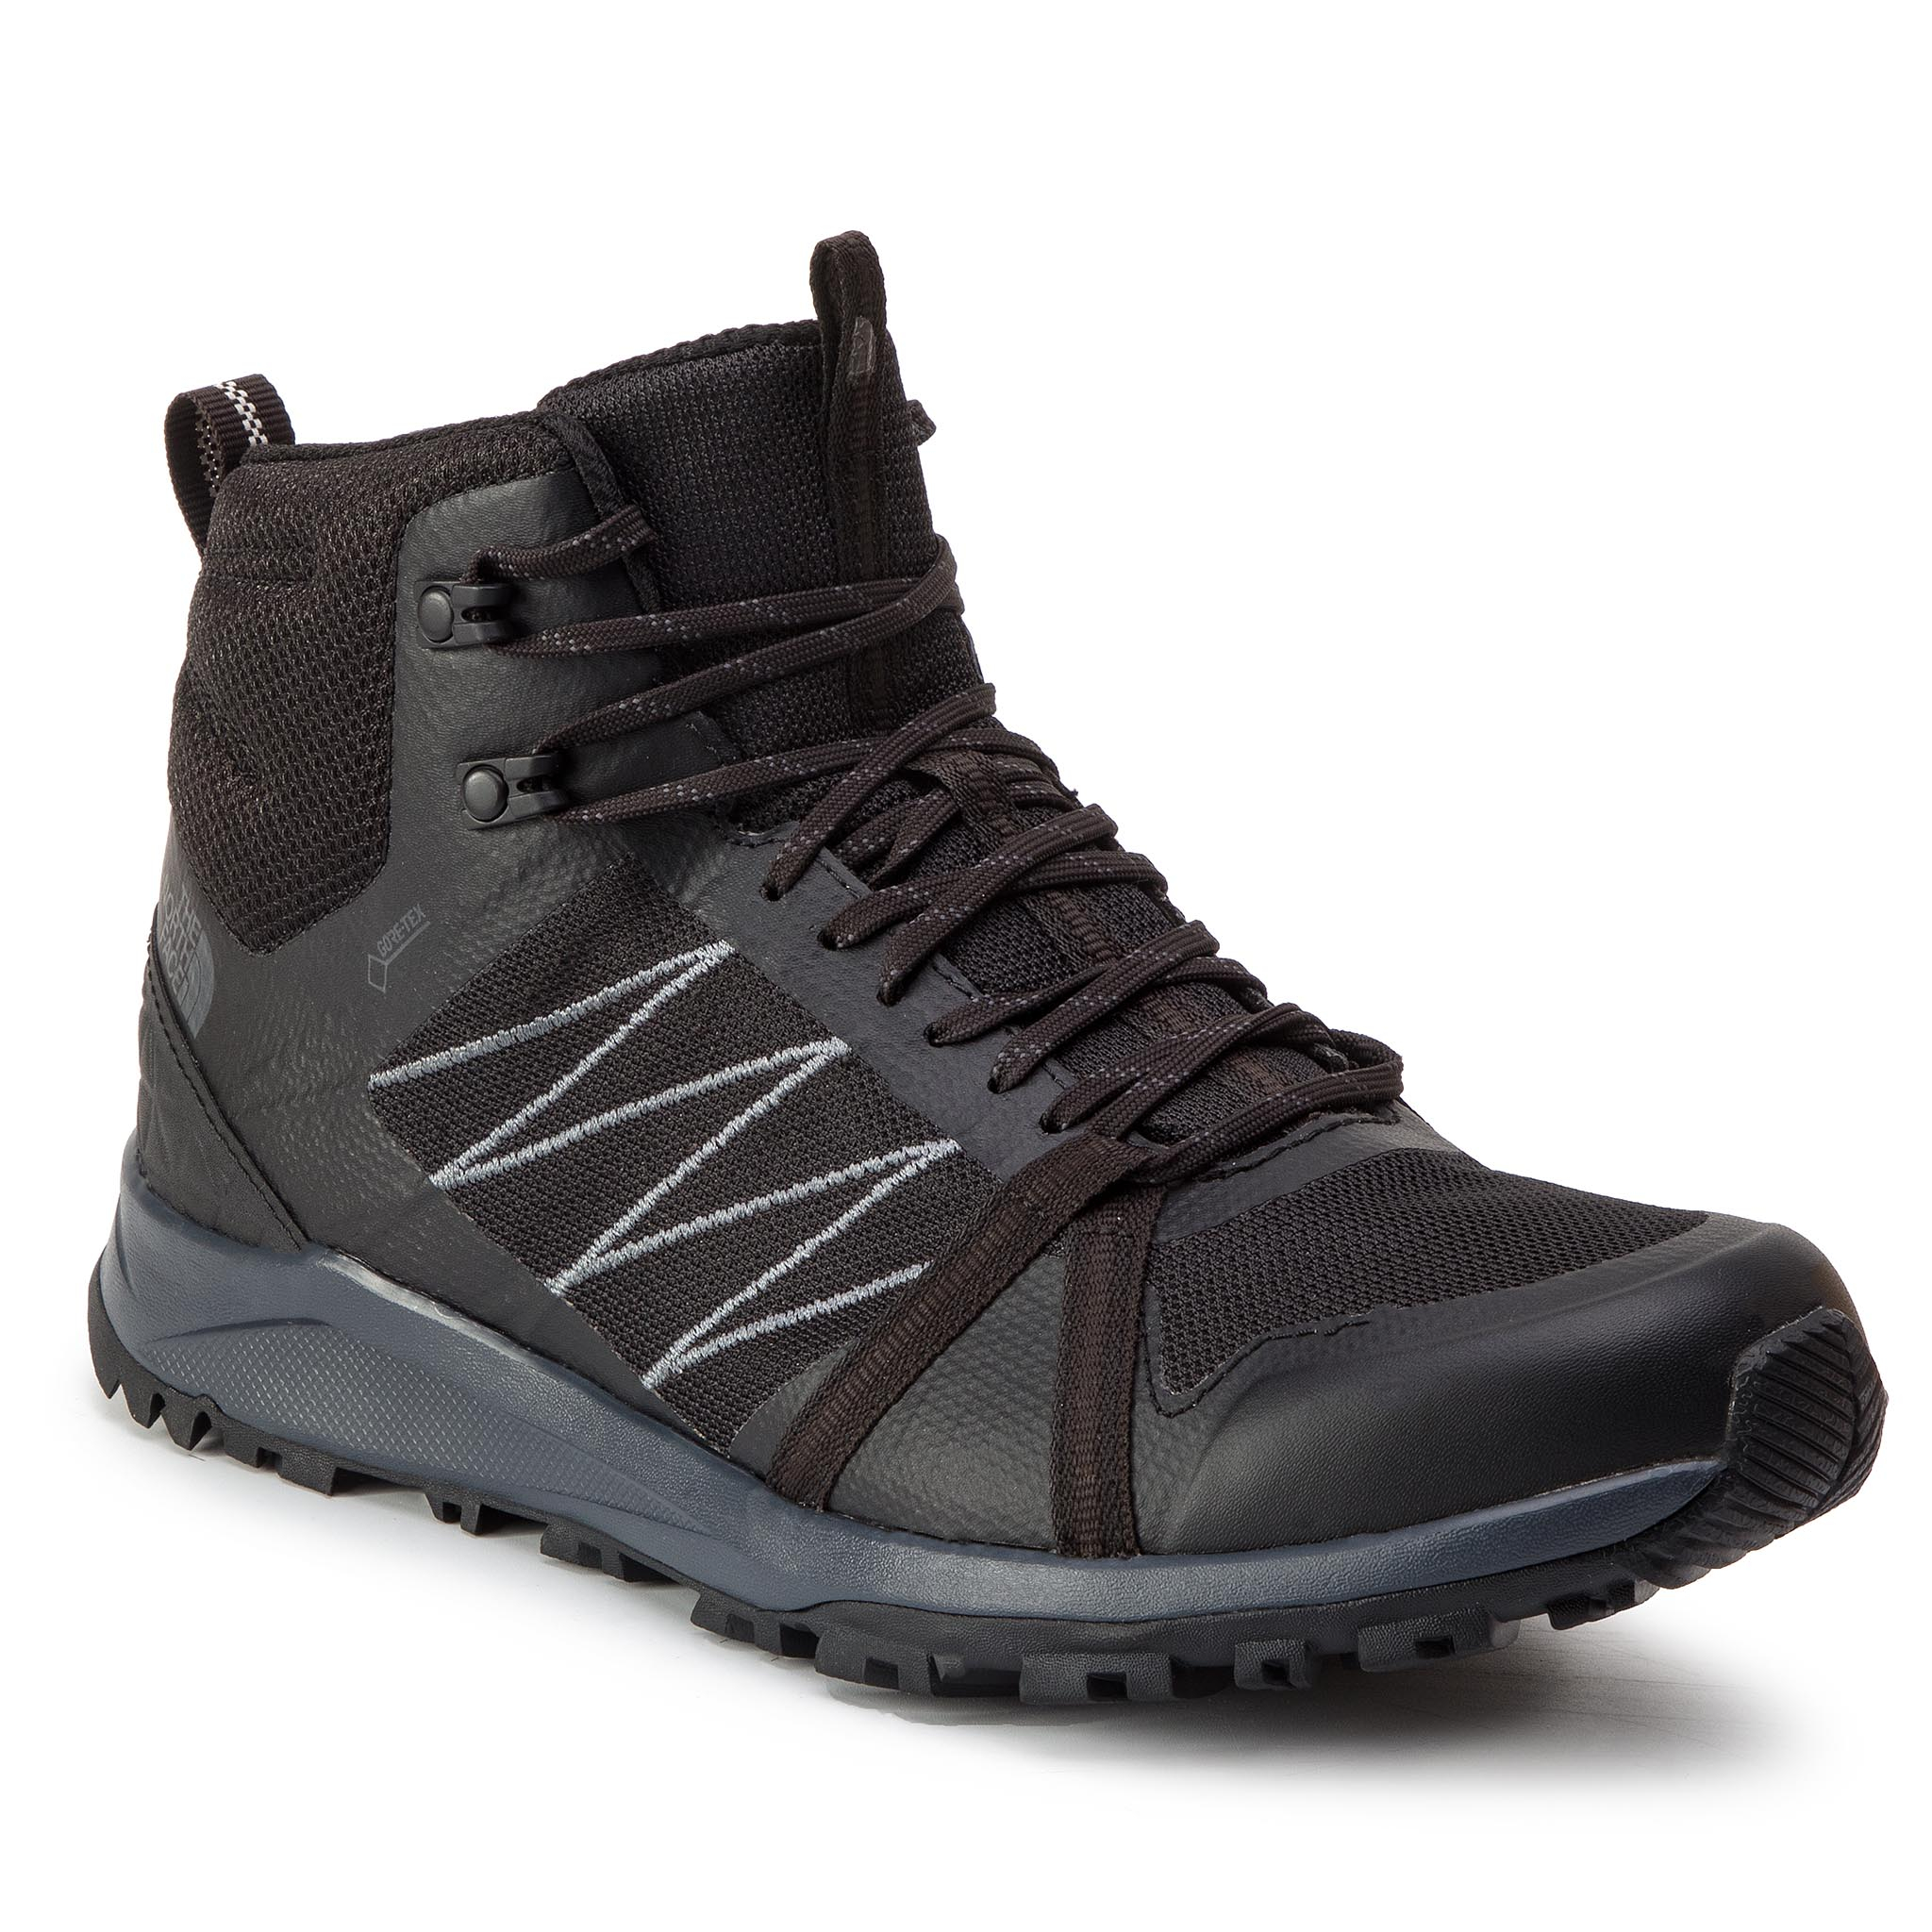 Trekkings THE NORTH FACE - Litewave Fastpack II Mid Gtx GORE-TEX T93REBCA0 Tnf Black/Ebony Grey